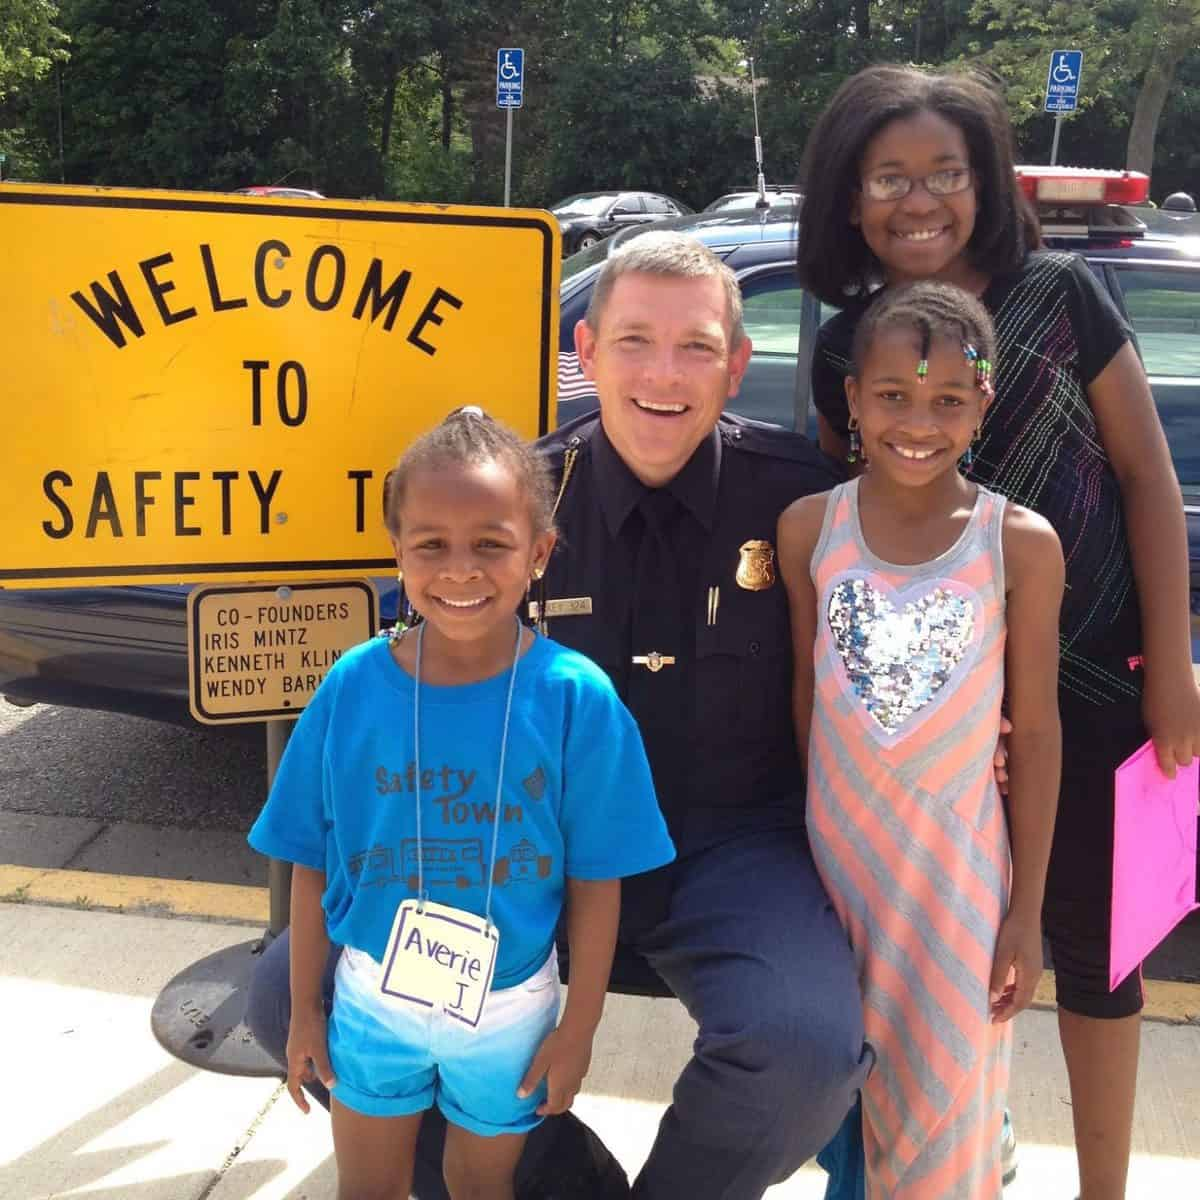 Safety Town by Ann Arbor Rec & Ed